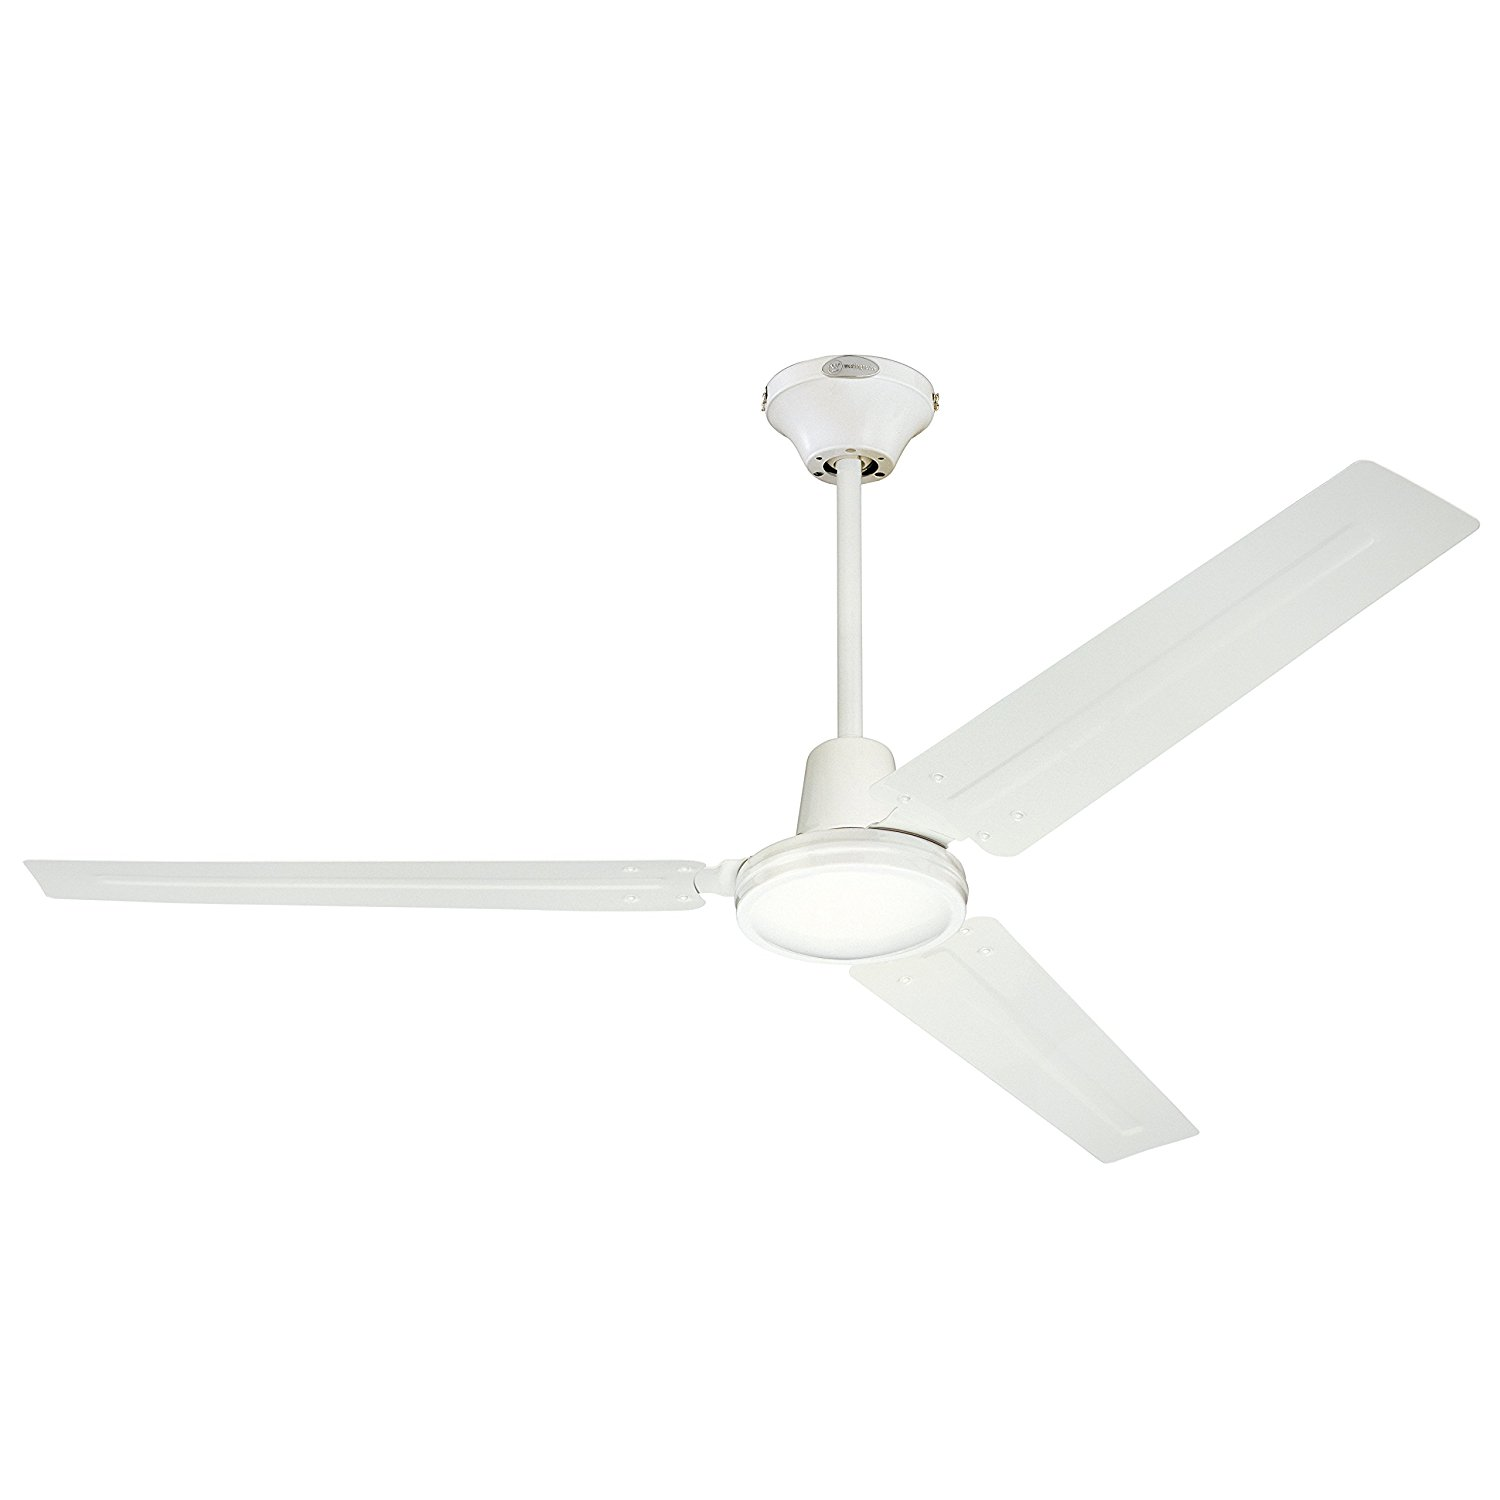 Westinghouse industrial ceiling fan A Fresh Approach